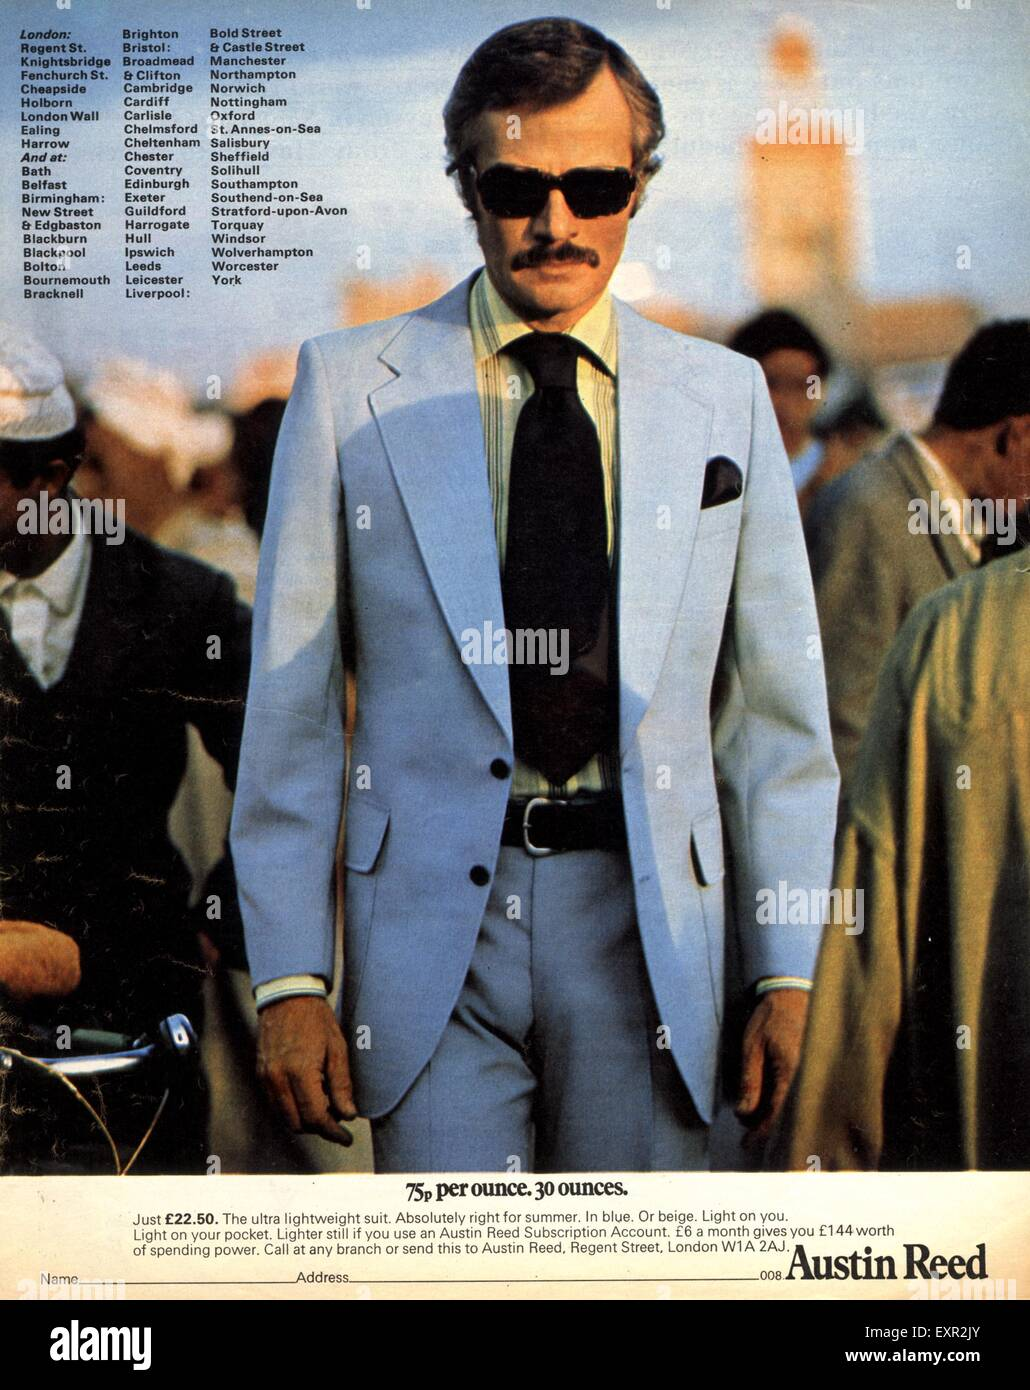 1970s Uk Mens Suits Magazine High Resolution Stock Photography And Images Alamy